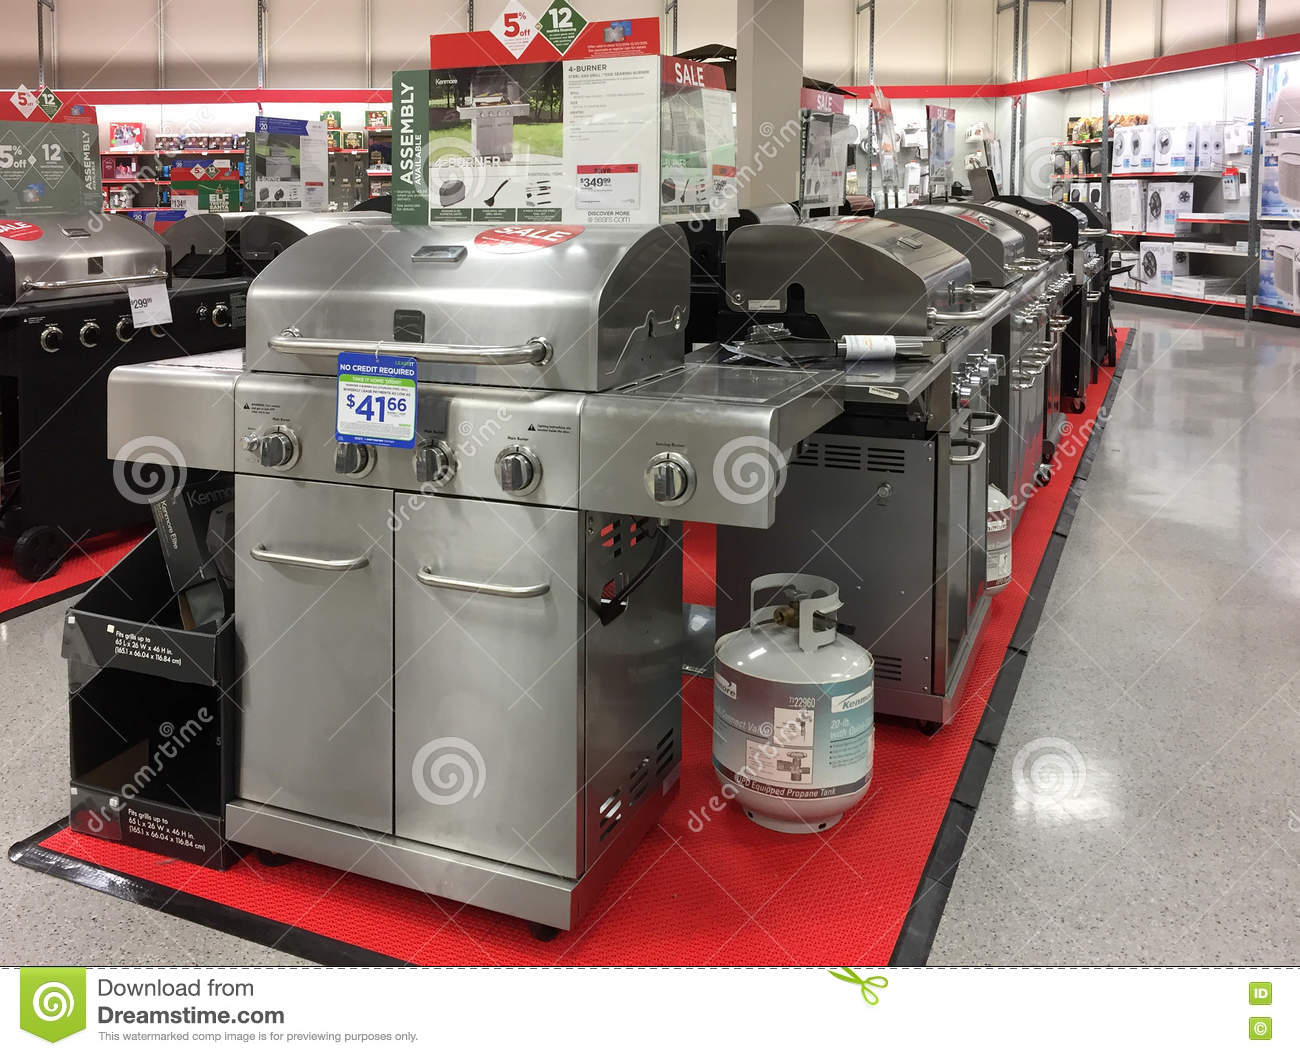 BBQ Grill For Sale At Store Editorial Photo - Image of cook